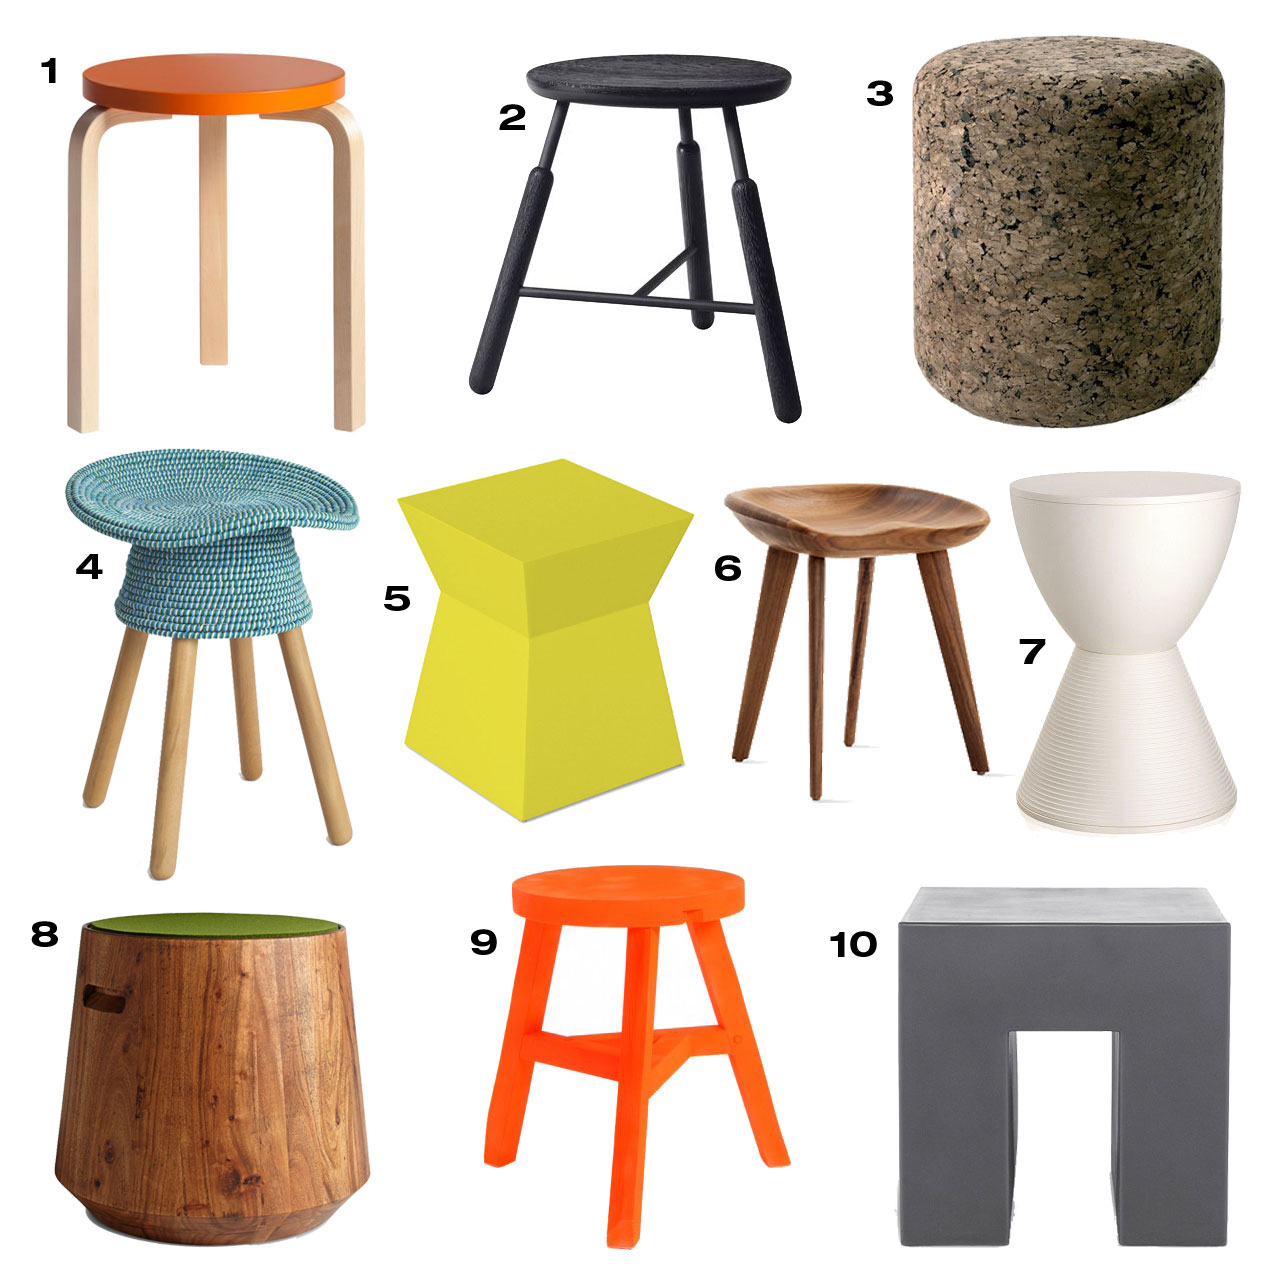 10 modern stools design milk. Black Bedroom Furniture Sets. Home Design Ideas